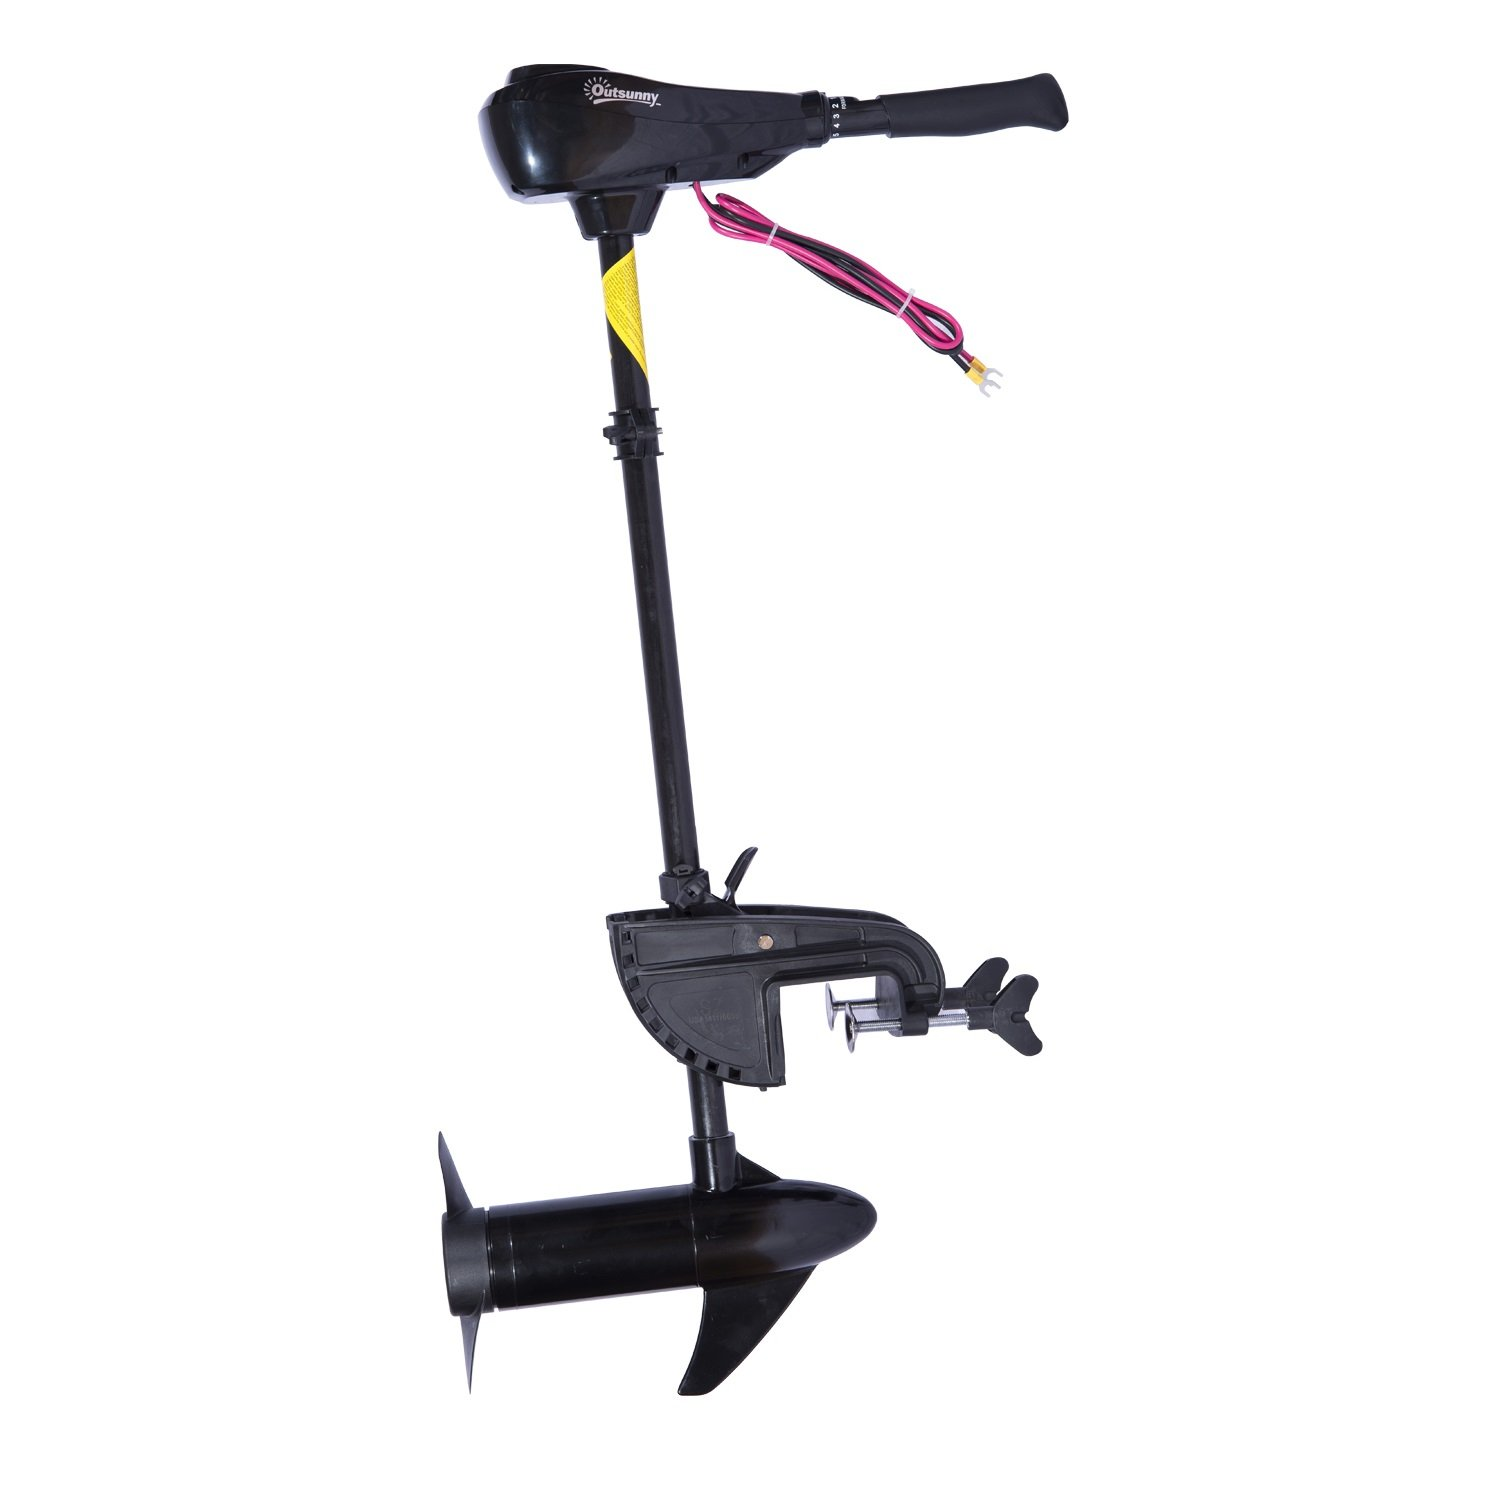 Outsunny 12V Transom Mounted Thrust Electric Fishing Boat Trolling Motor, 55 lb by Outsunny